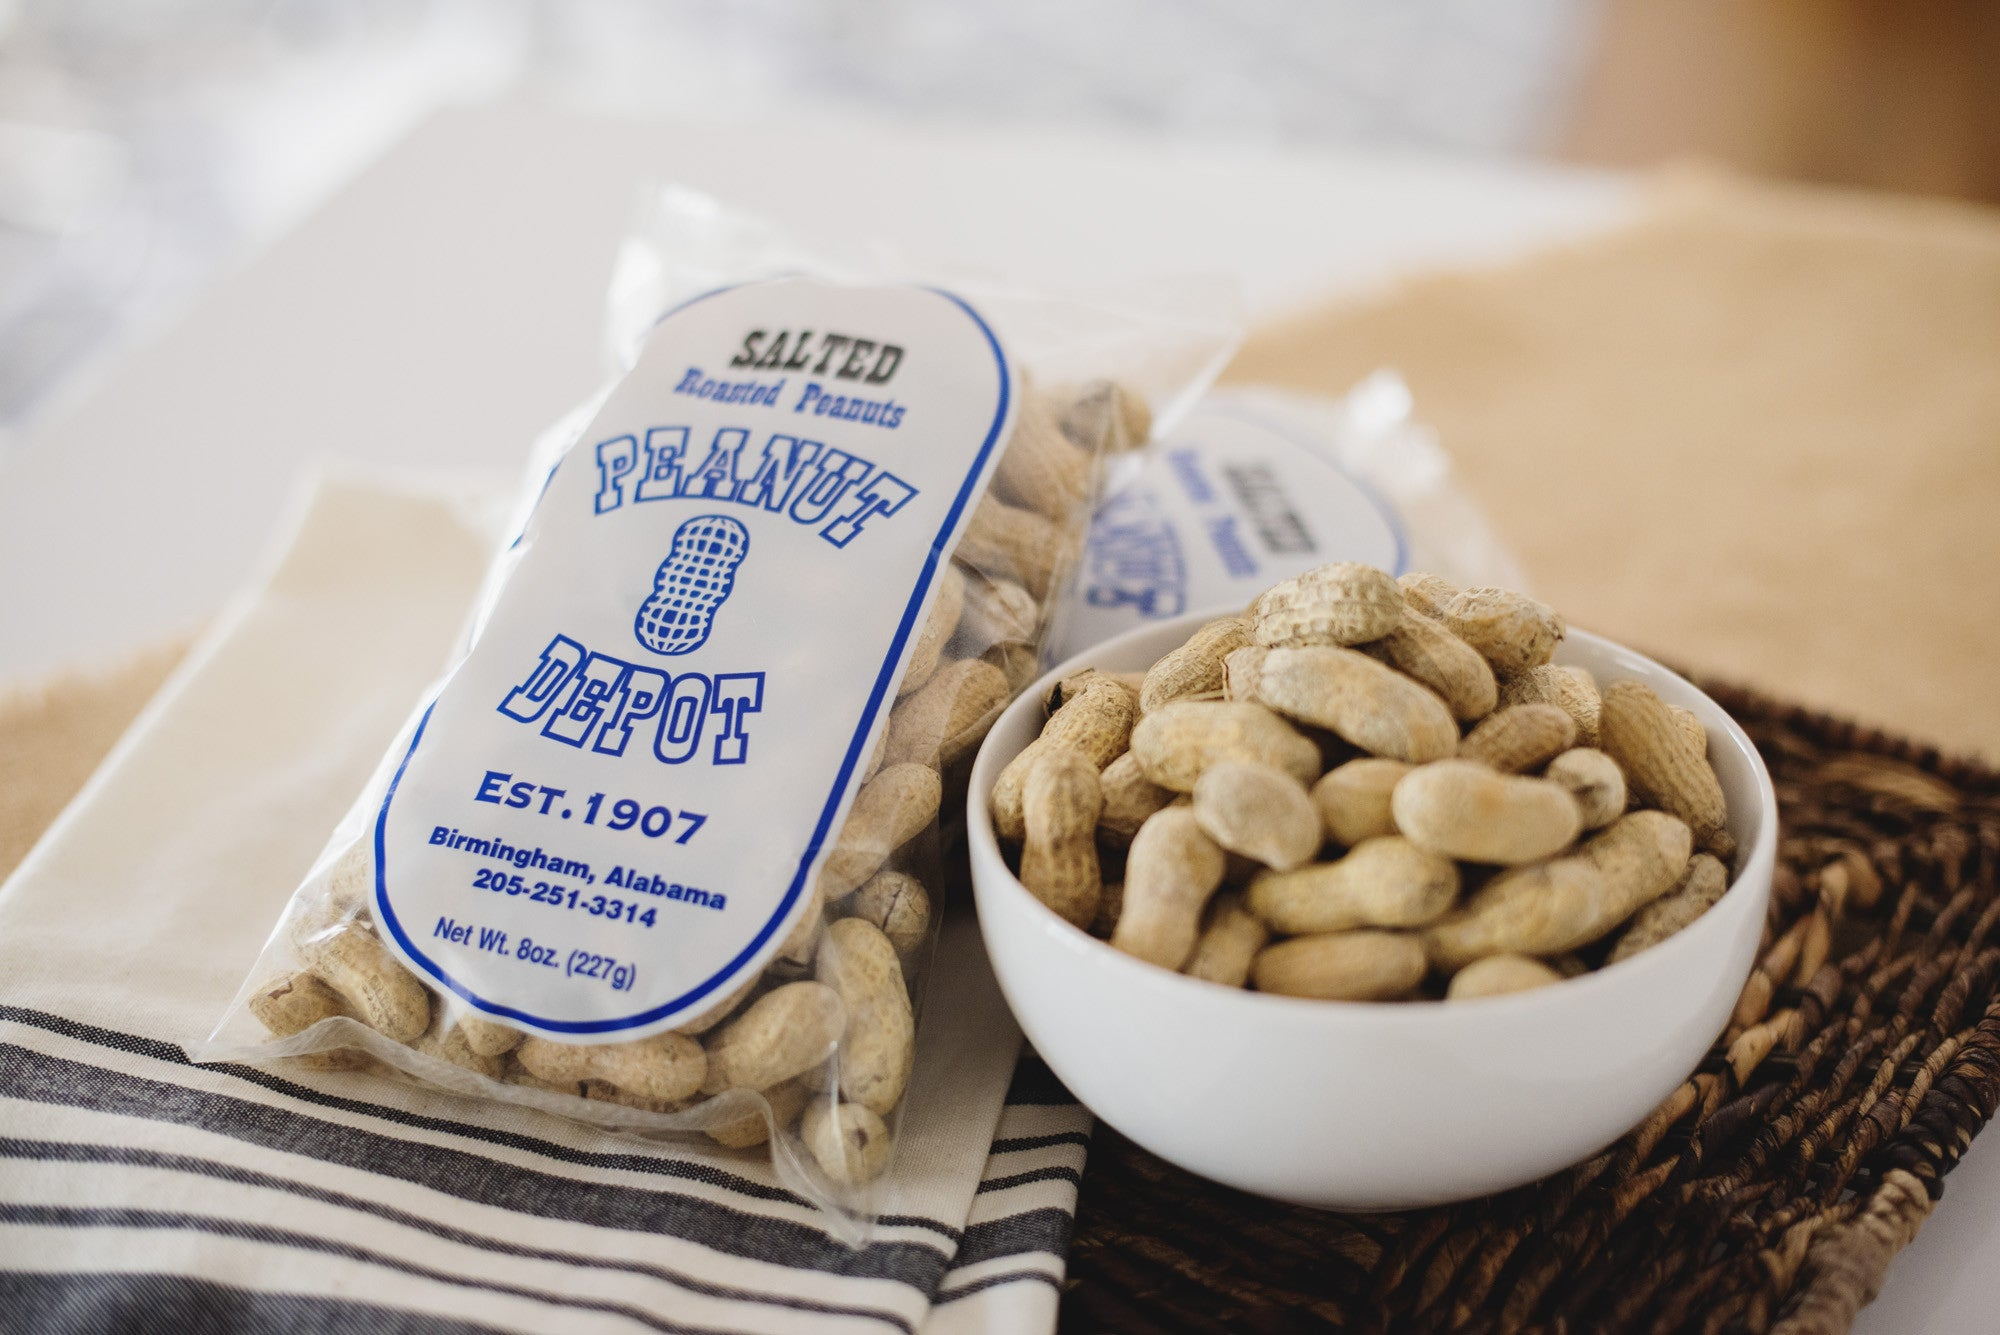 <a href='http://www.peanutdepot.com/store' target='_blank'><b>The Peanut Depot Salted Peanuts</b></a><br> Using antique roasters, and the time honored method of not adding oils or preservatives, the Peanut Depot has been roasting tasty peanuts for over 100 years.